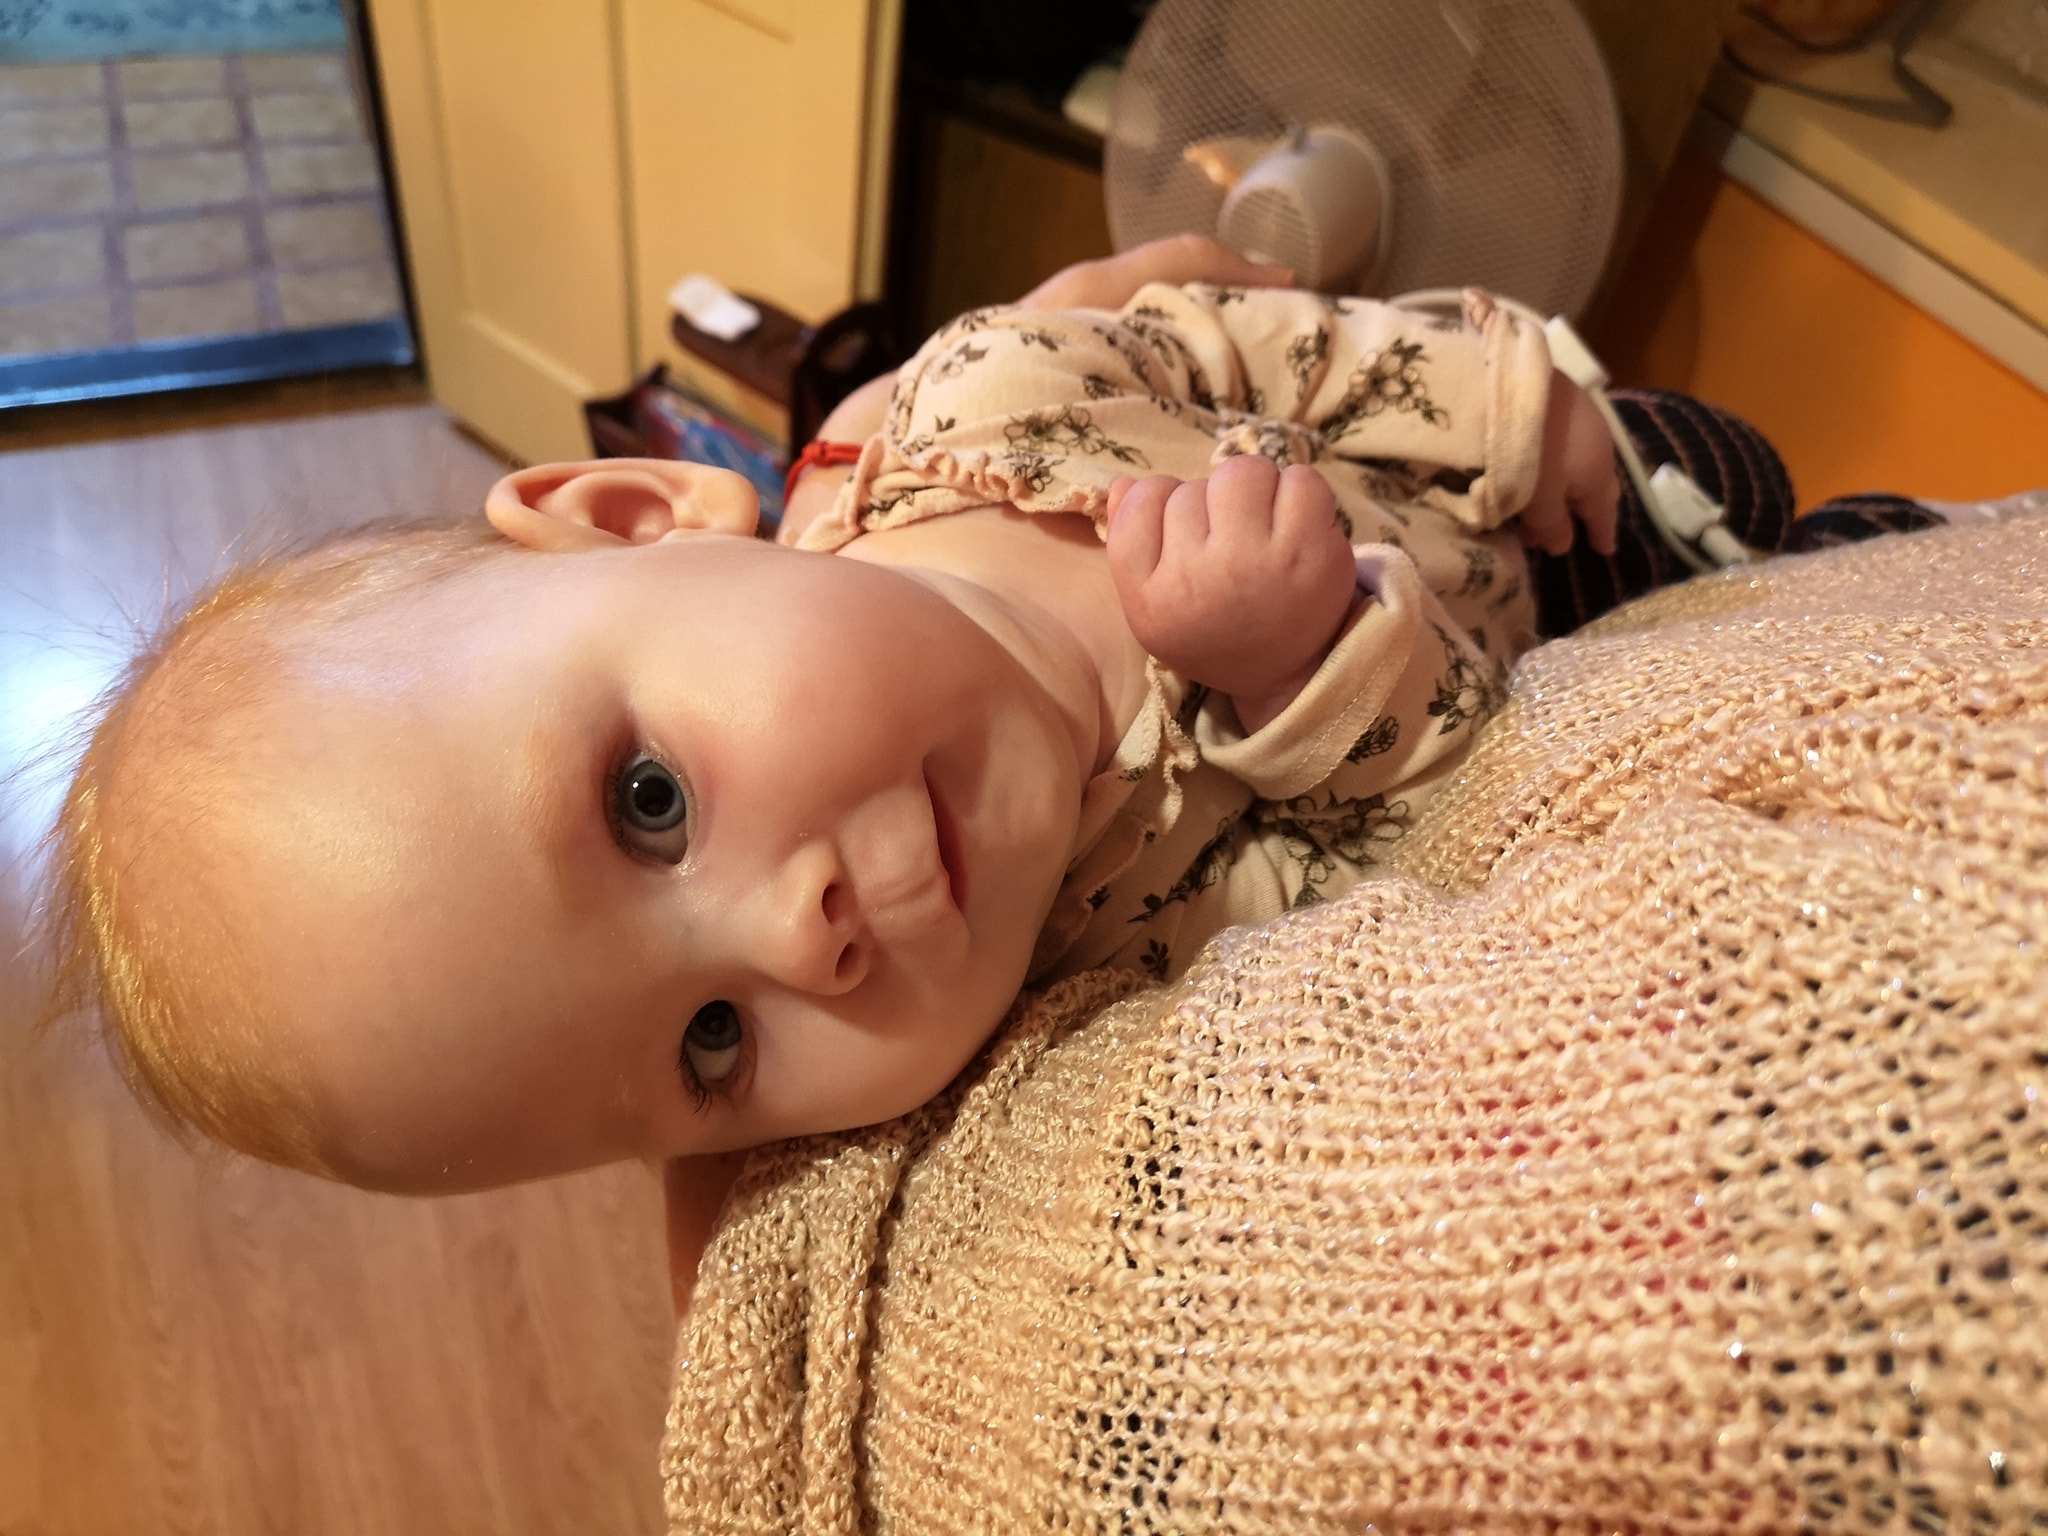 State Funds SMA-Afflicted Child's Treatment for First Time